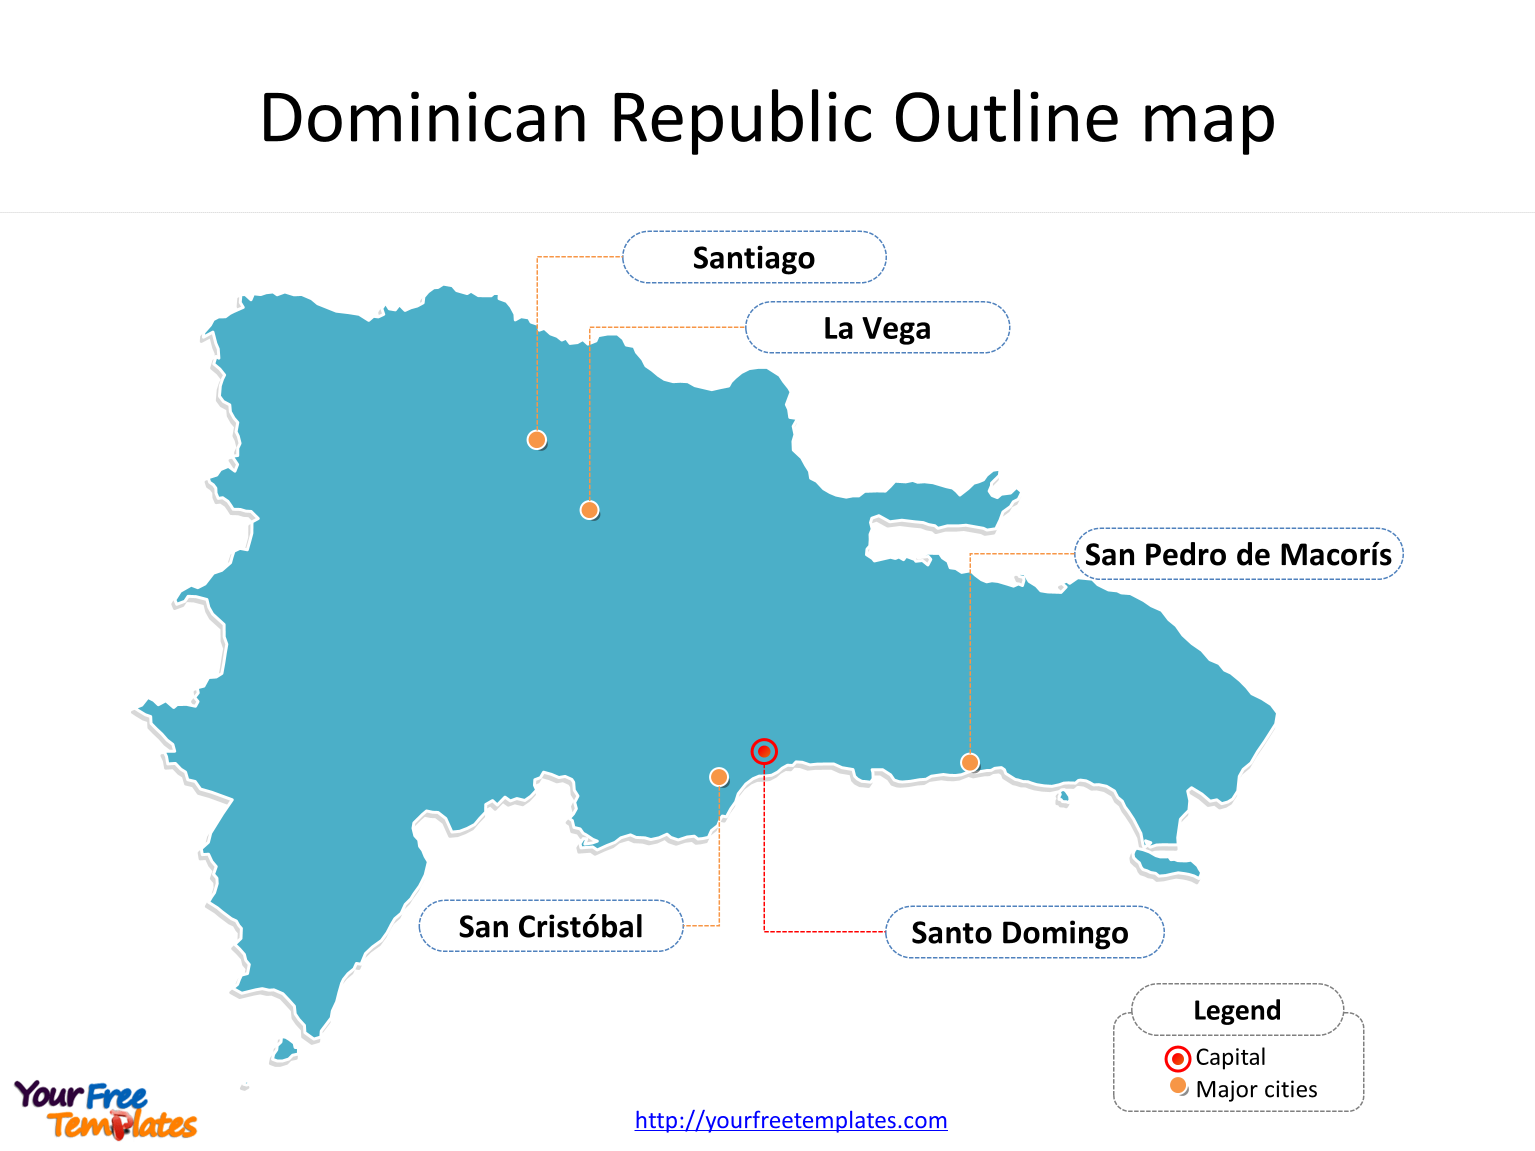 Dominican Republic Map templates - Free PowerPoint Templates on haiti map, peru map, el salvador, punta cana map, ecuador map, jamaica map, china map, canada map, cuba map, hispaniola map, united states map, mexico map, puerto rico, caribbean map, spain map, panama map, dr map, italy map, belize map, costa rica map, carribean map, costa rica, punta cana, hungary map, santo domingo,